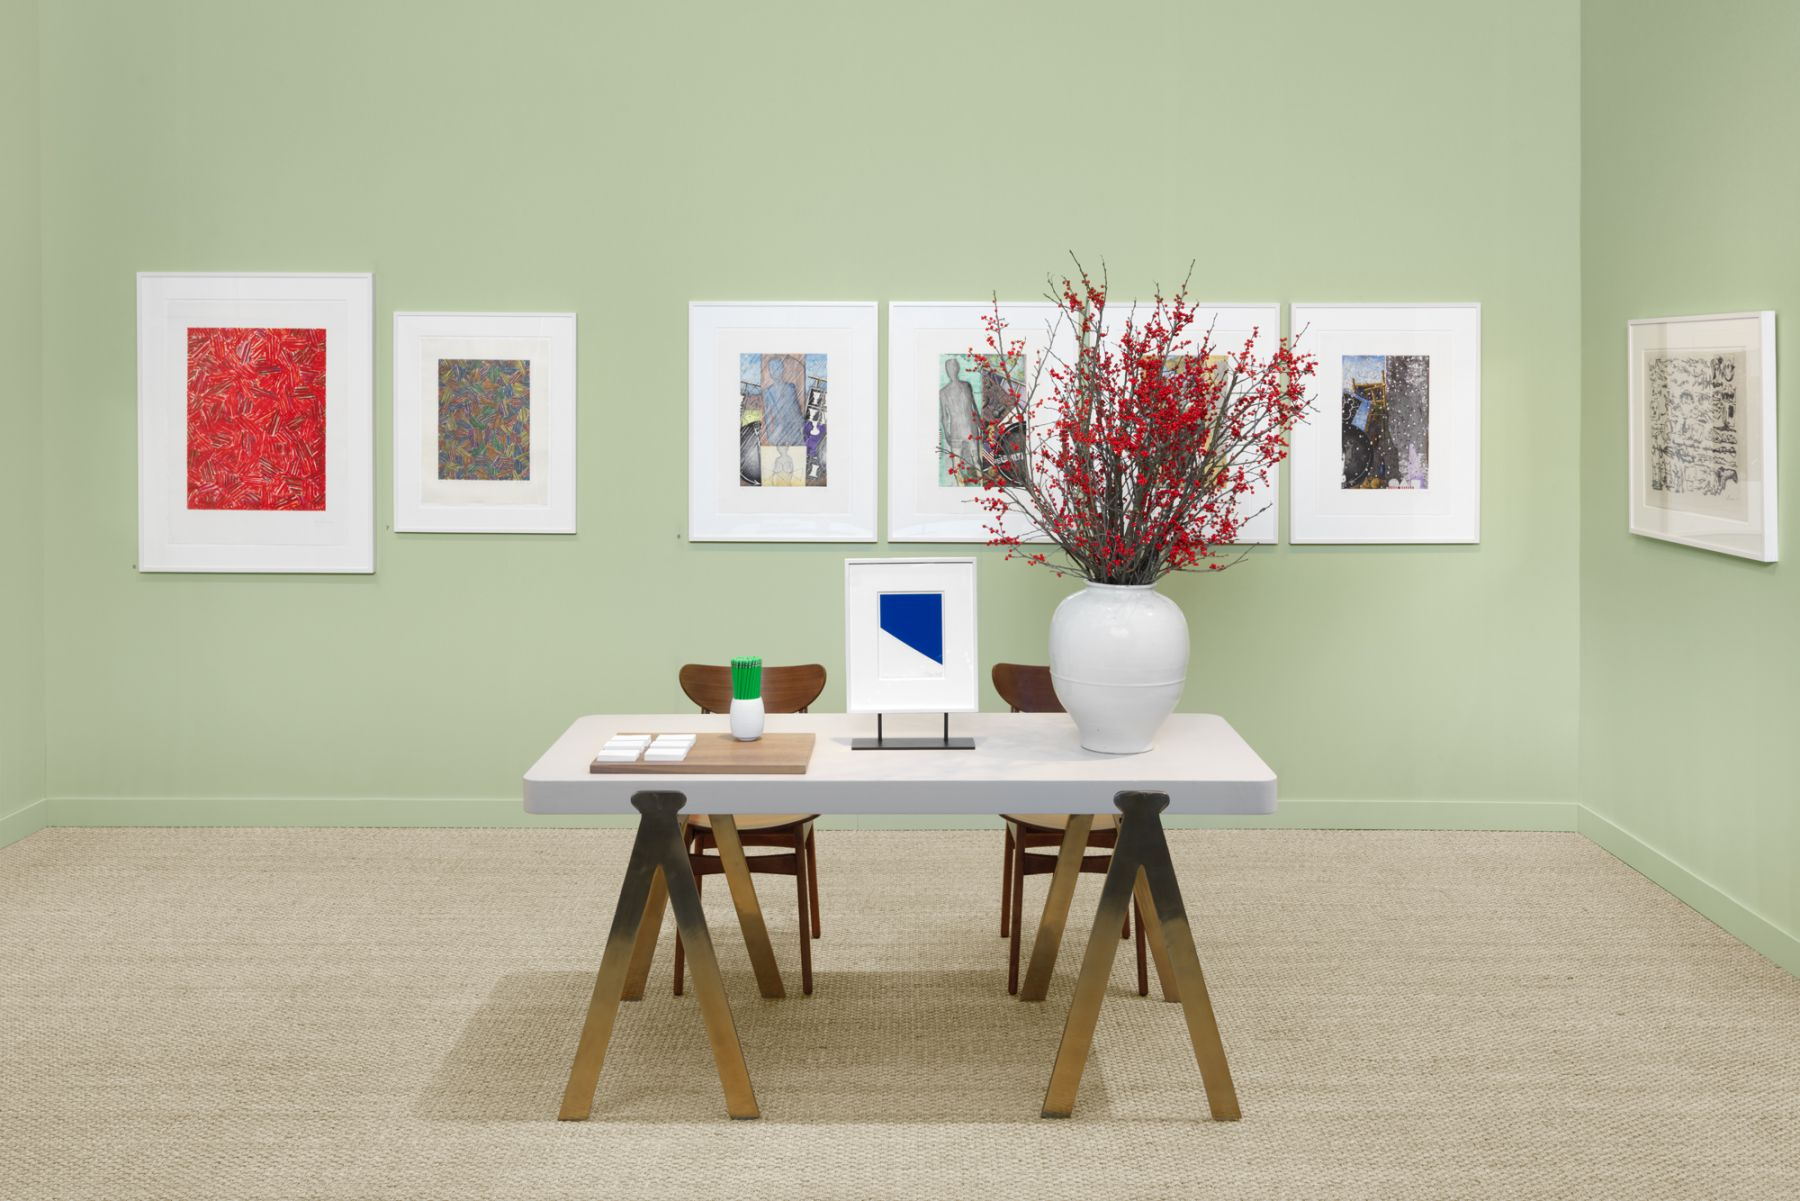 IFPDA Fine Art Print Fair, October 23-27, 2019